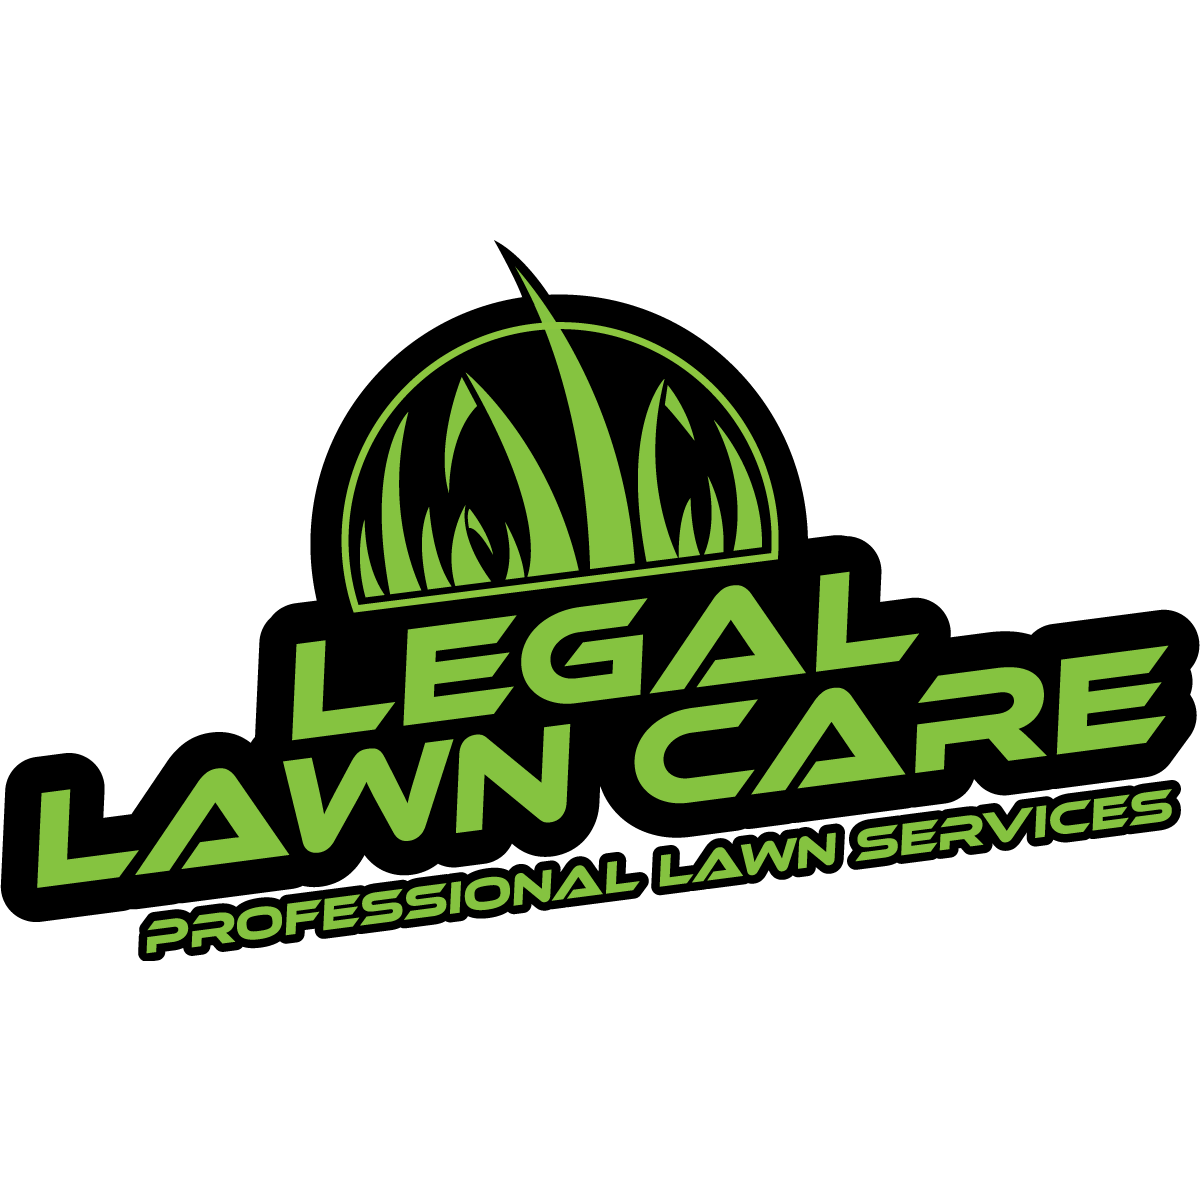 Legal lawn care prince frederick maryland md for Local lawn care services